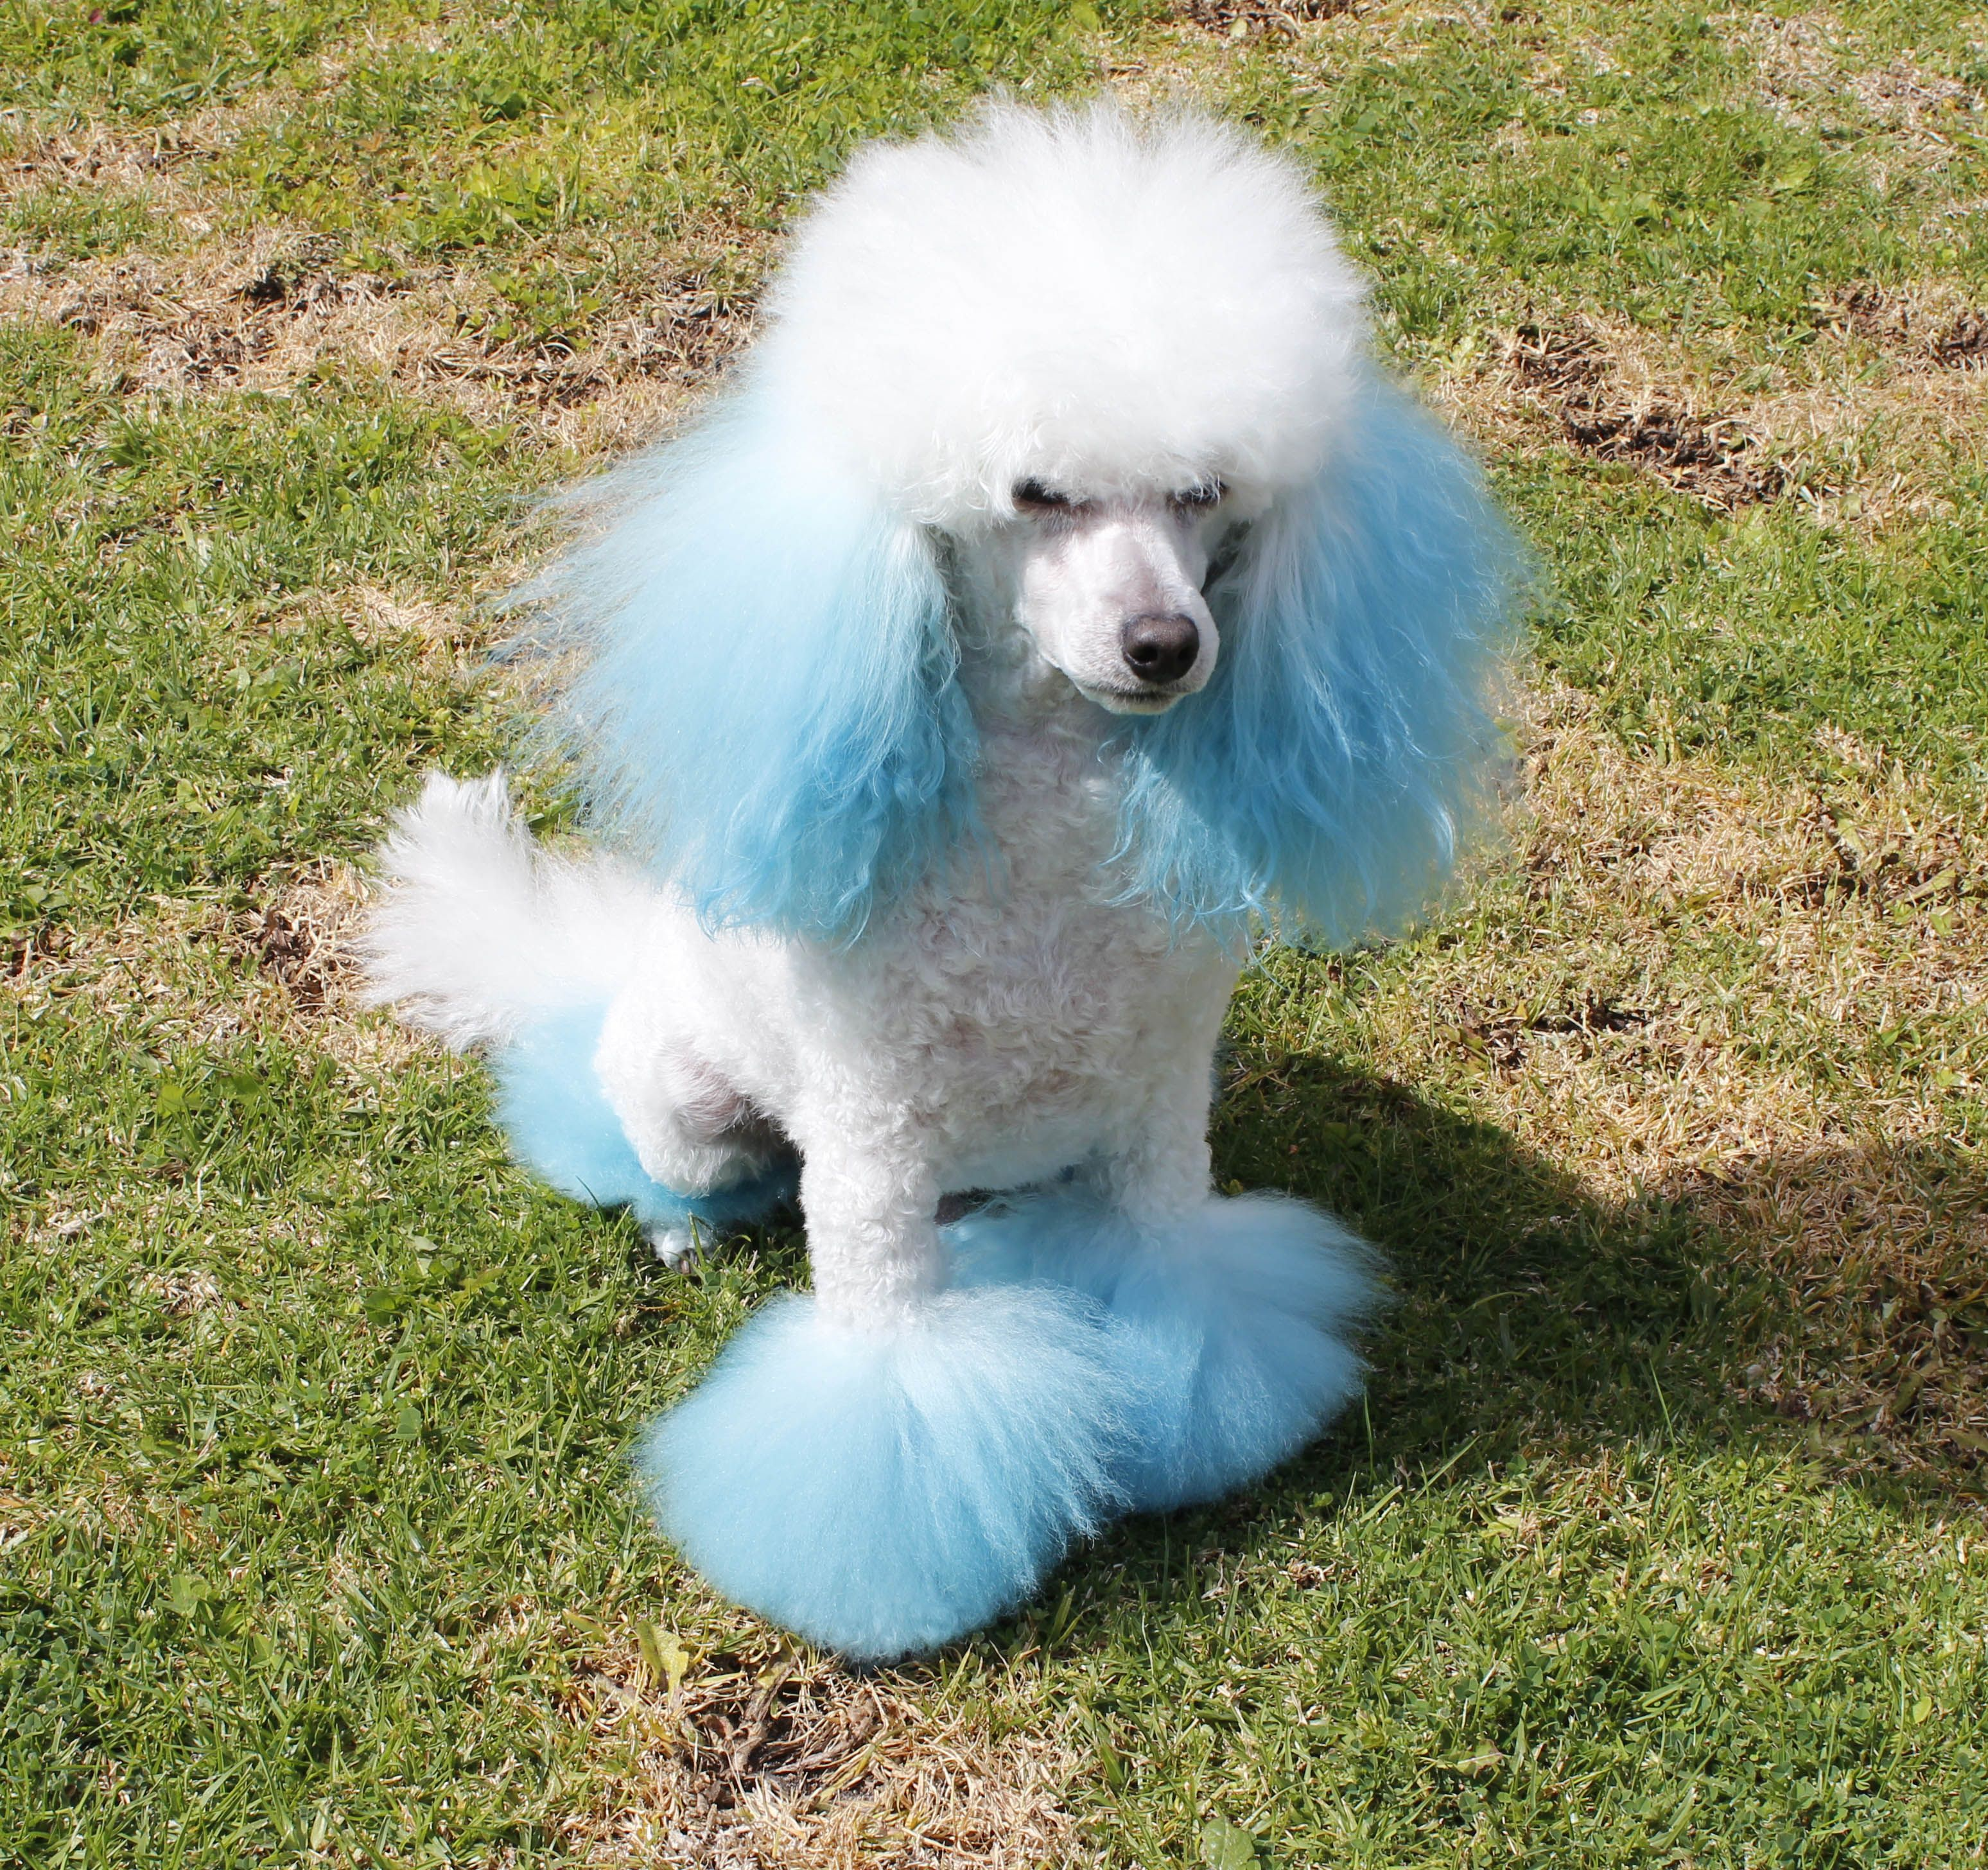 Gucci Is A Pedigree White Miniature Poodle We Live By The Beach